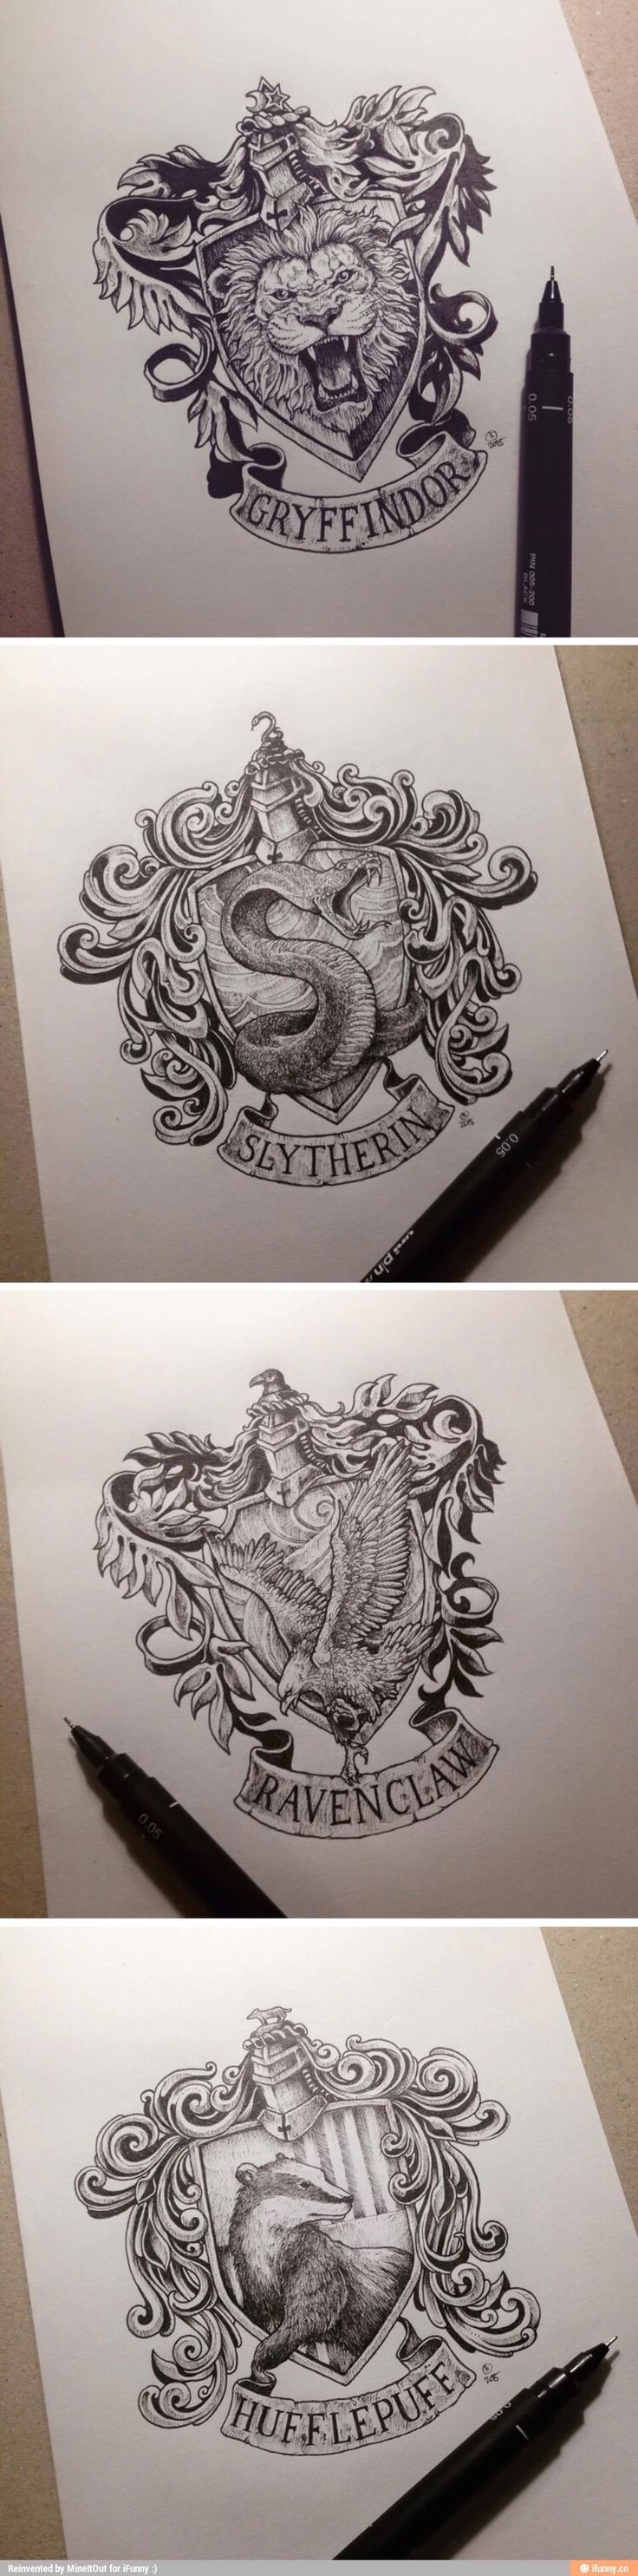 Ink drawings of Gryffindor, Slytherin, Ravenclaw, and Hufflepuff. Give them to me!!!